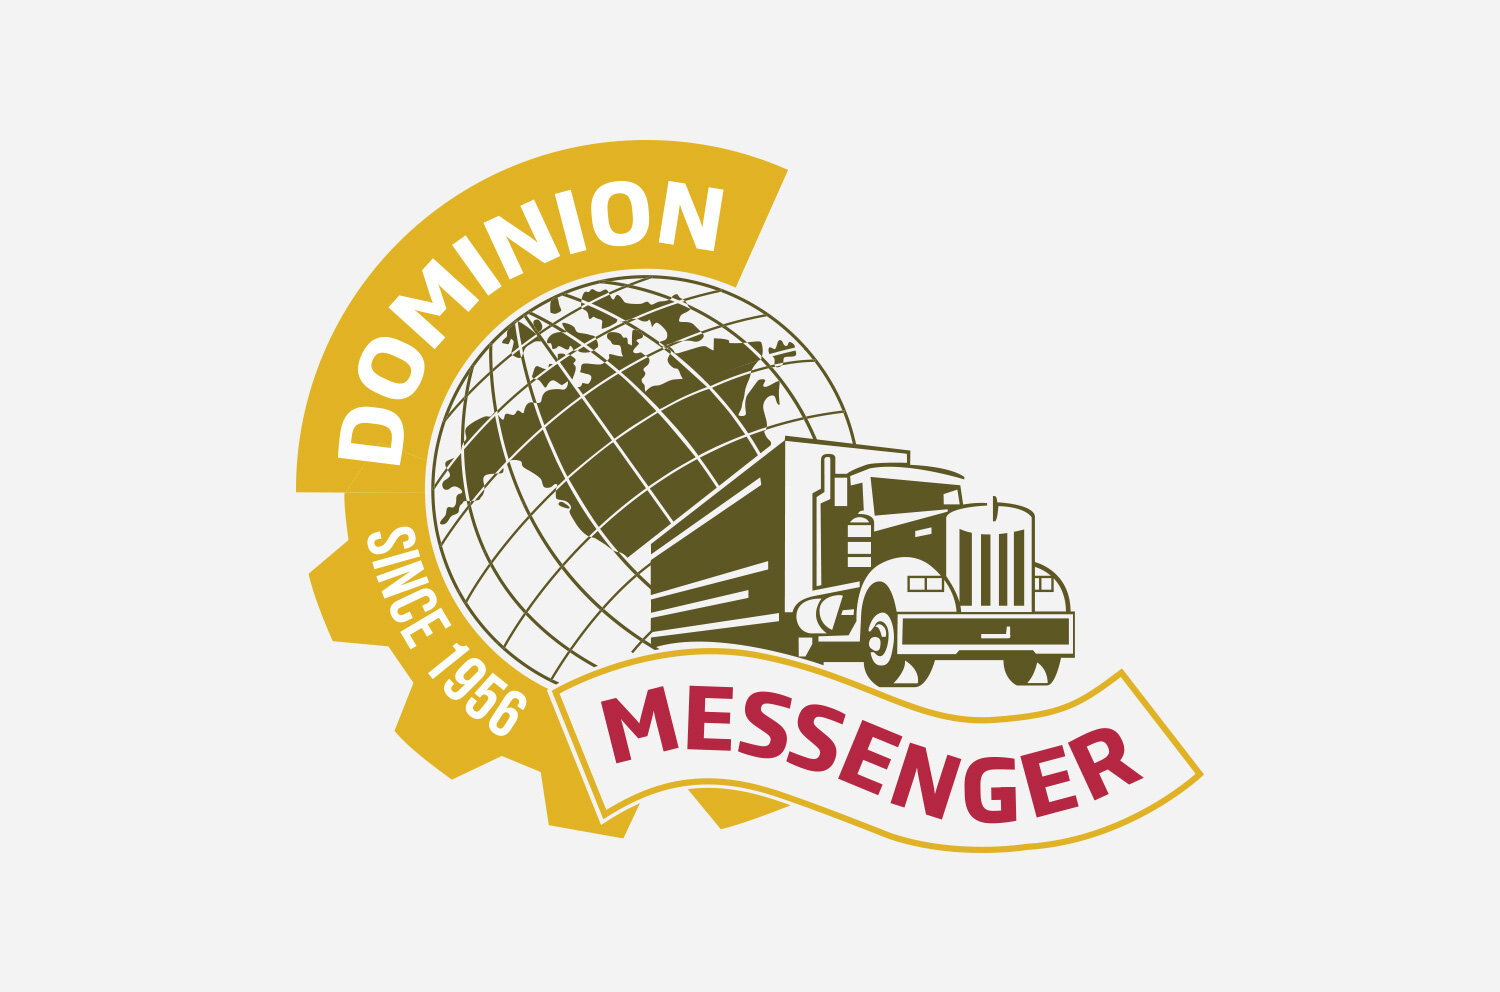 Dominion-Messenger-Logo.jpg